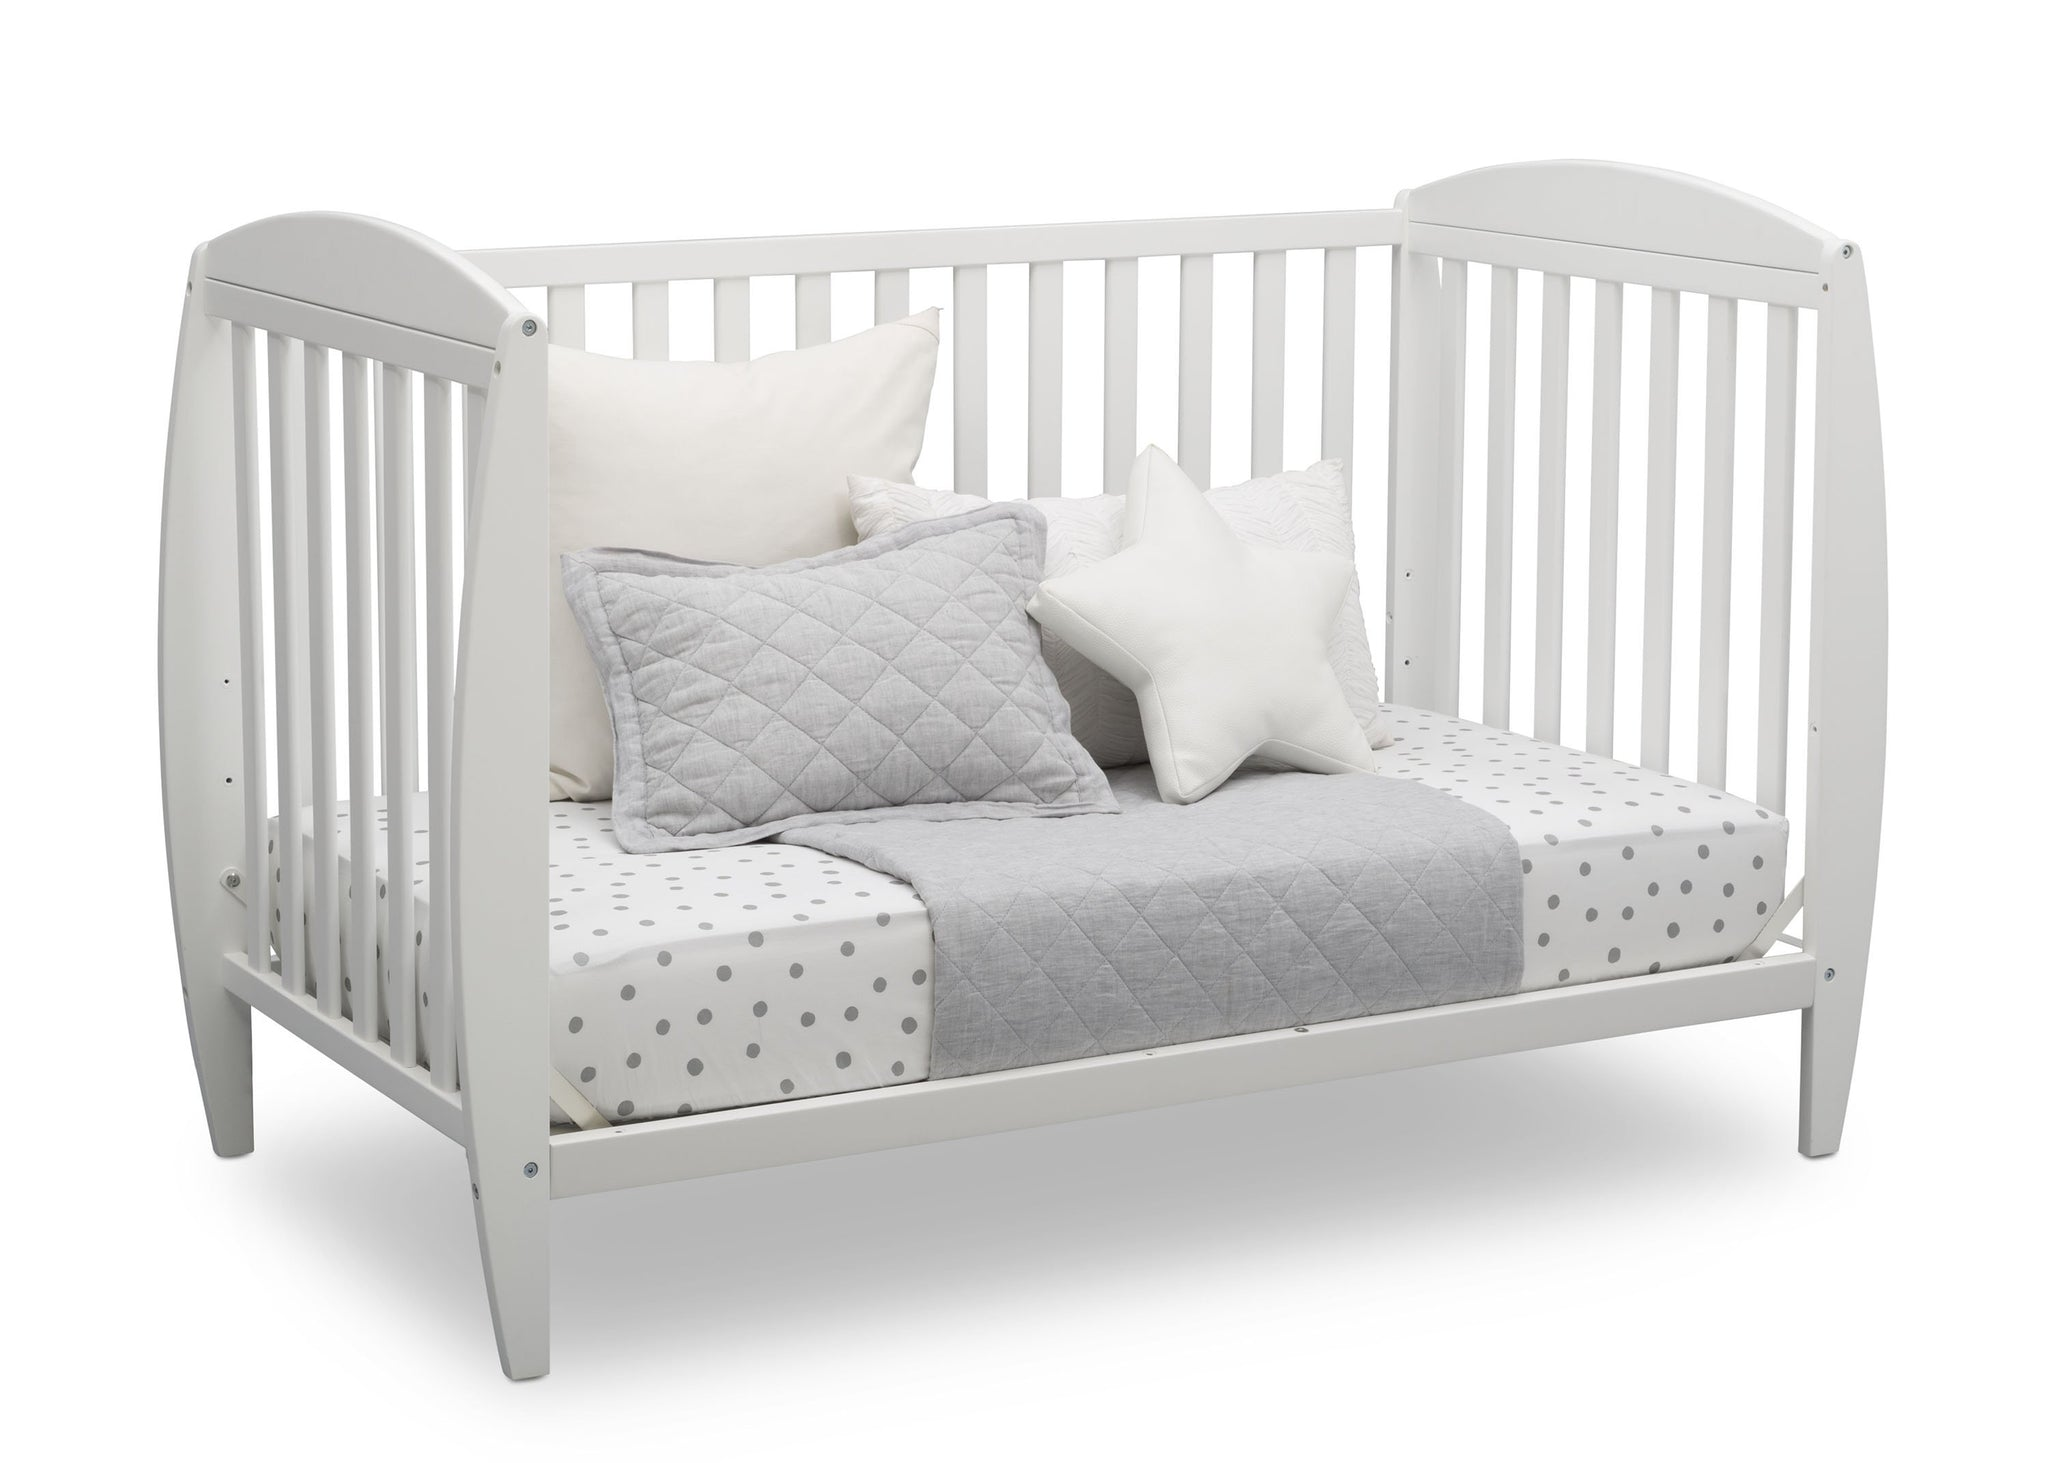 Delta Children Bianca White (130) Taylor 4-in-1 Convertible Crib (W10040), Silo Daybed, b4b